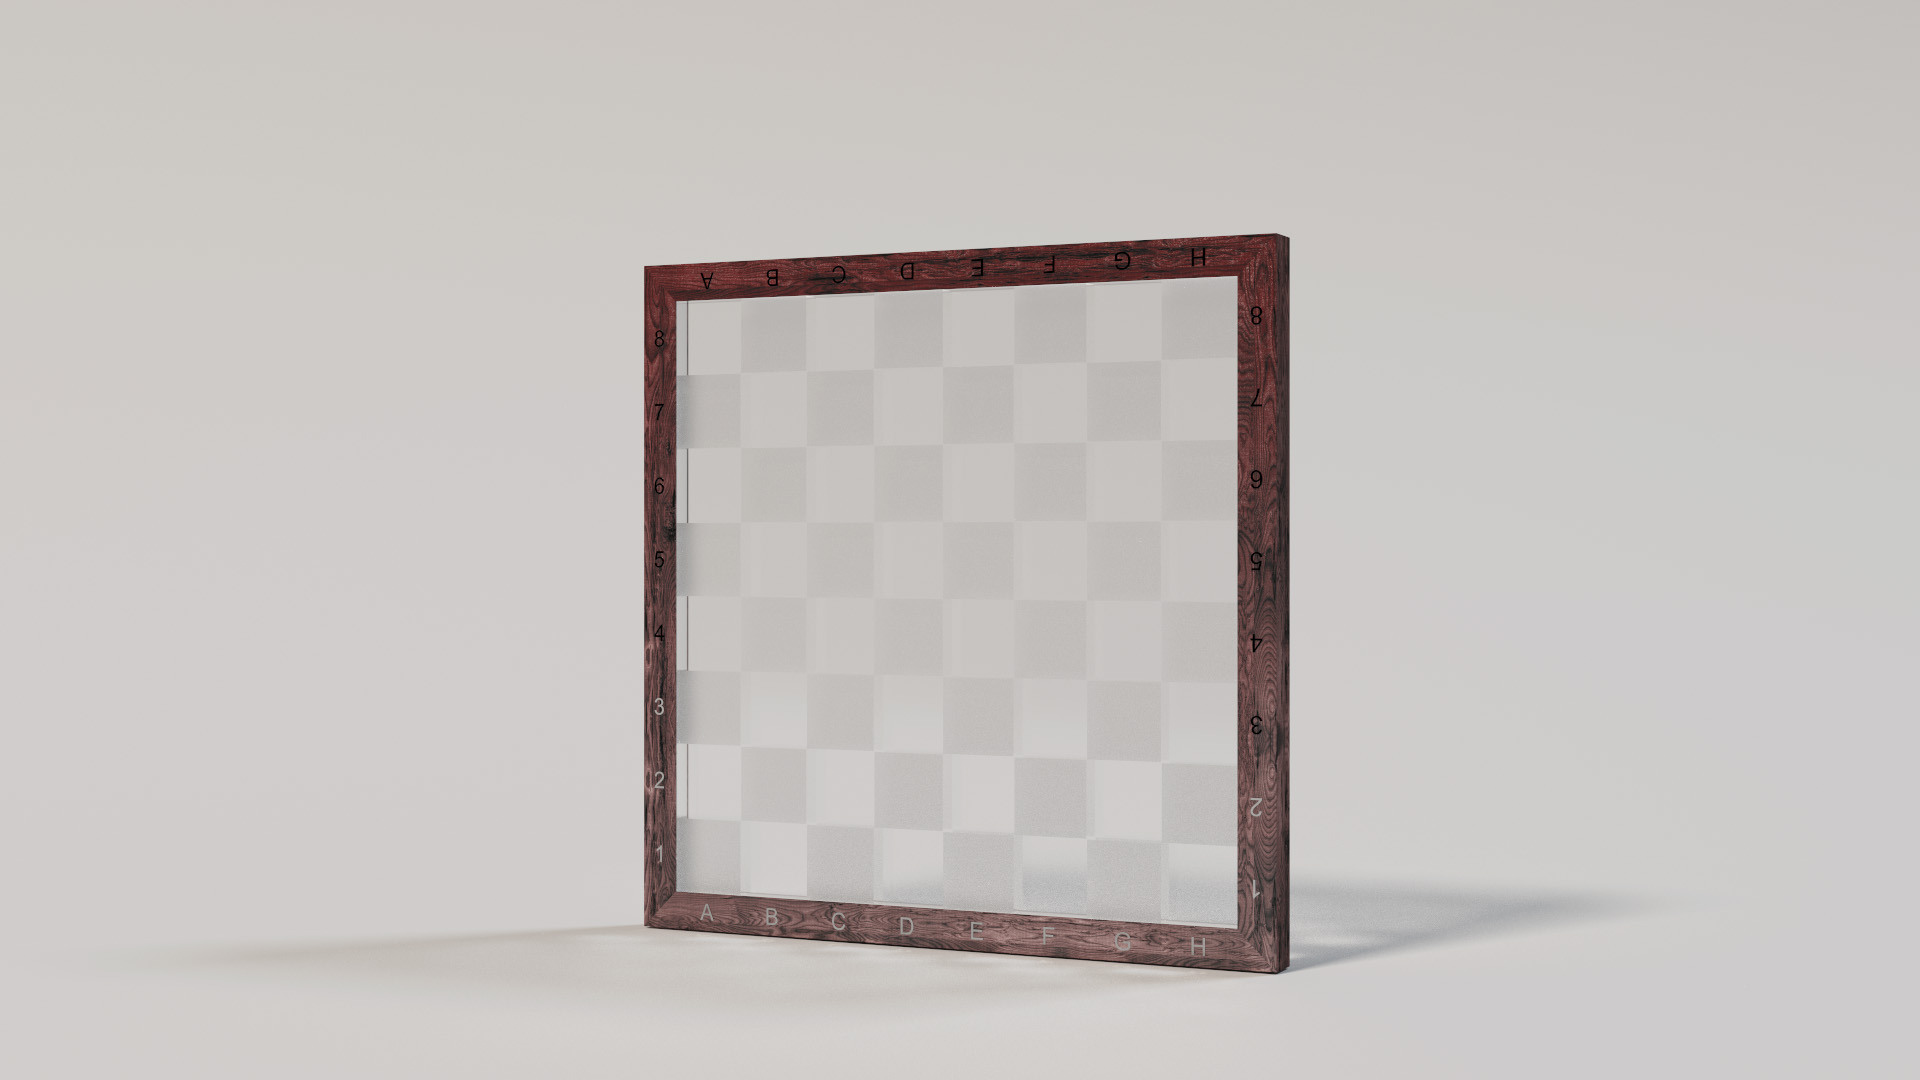 Chessboard with ground glass squares and clear glass squares. Rendered using BDPT.